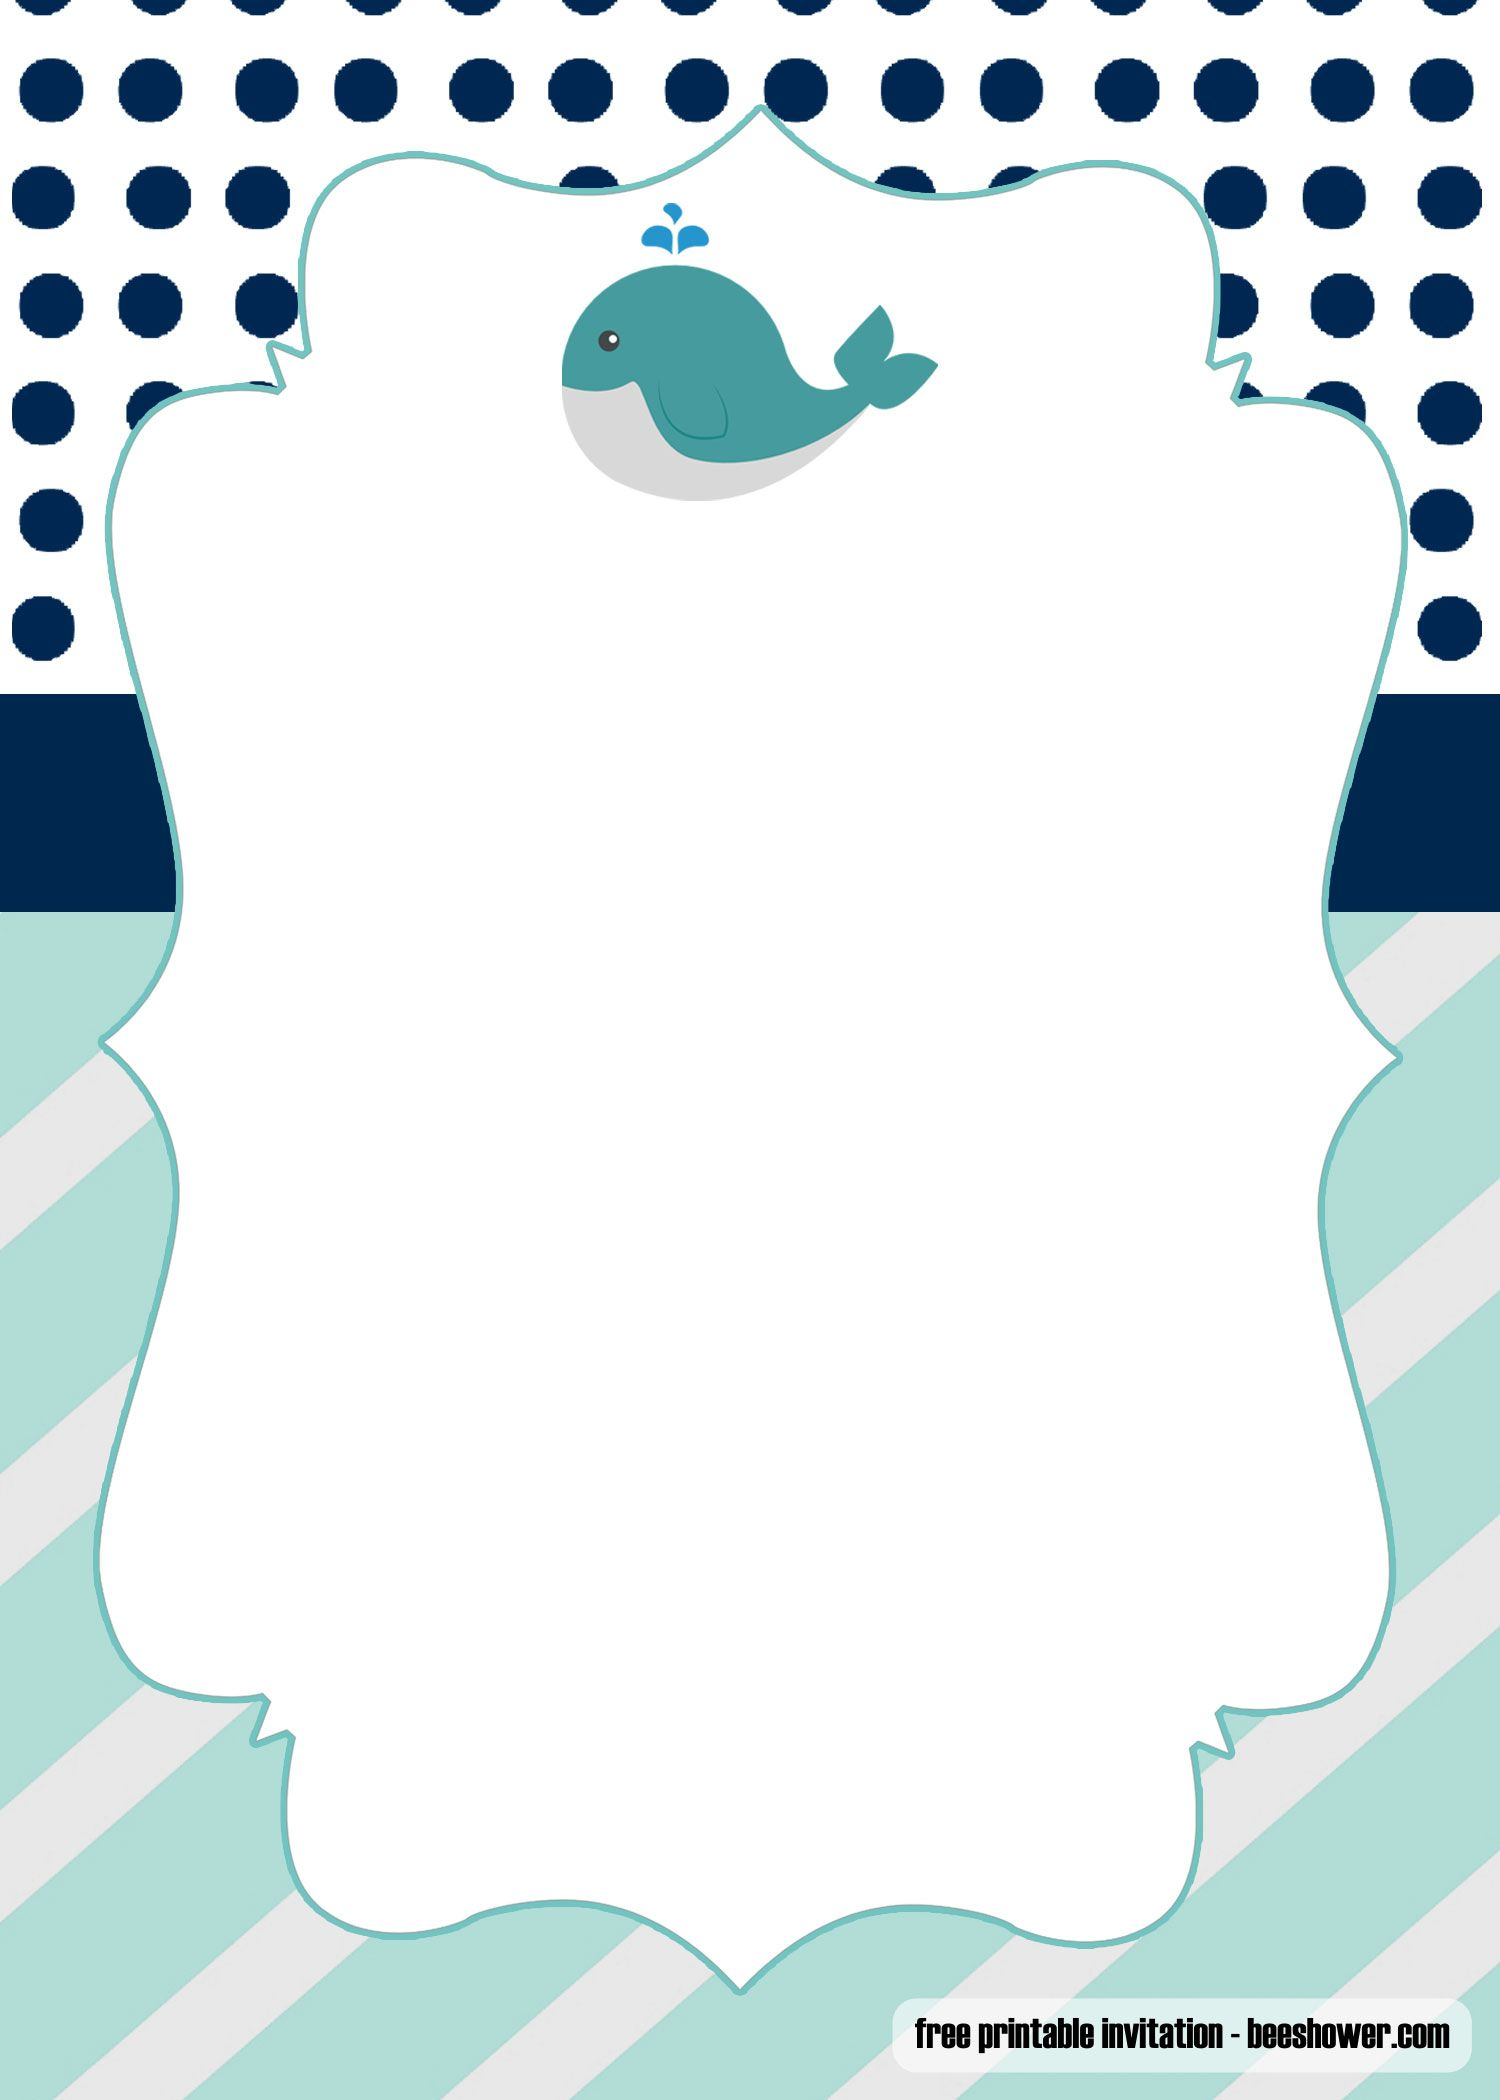 Free Printable Whale Baby Shower Invitations Templates Whale Baby Shower Invitations Baby Shower Invitations Diy Printable Baby Shower Invitations Diy baby shower invitations template